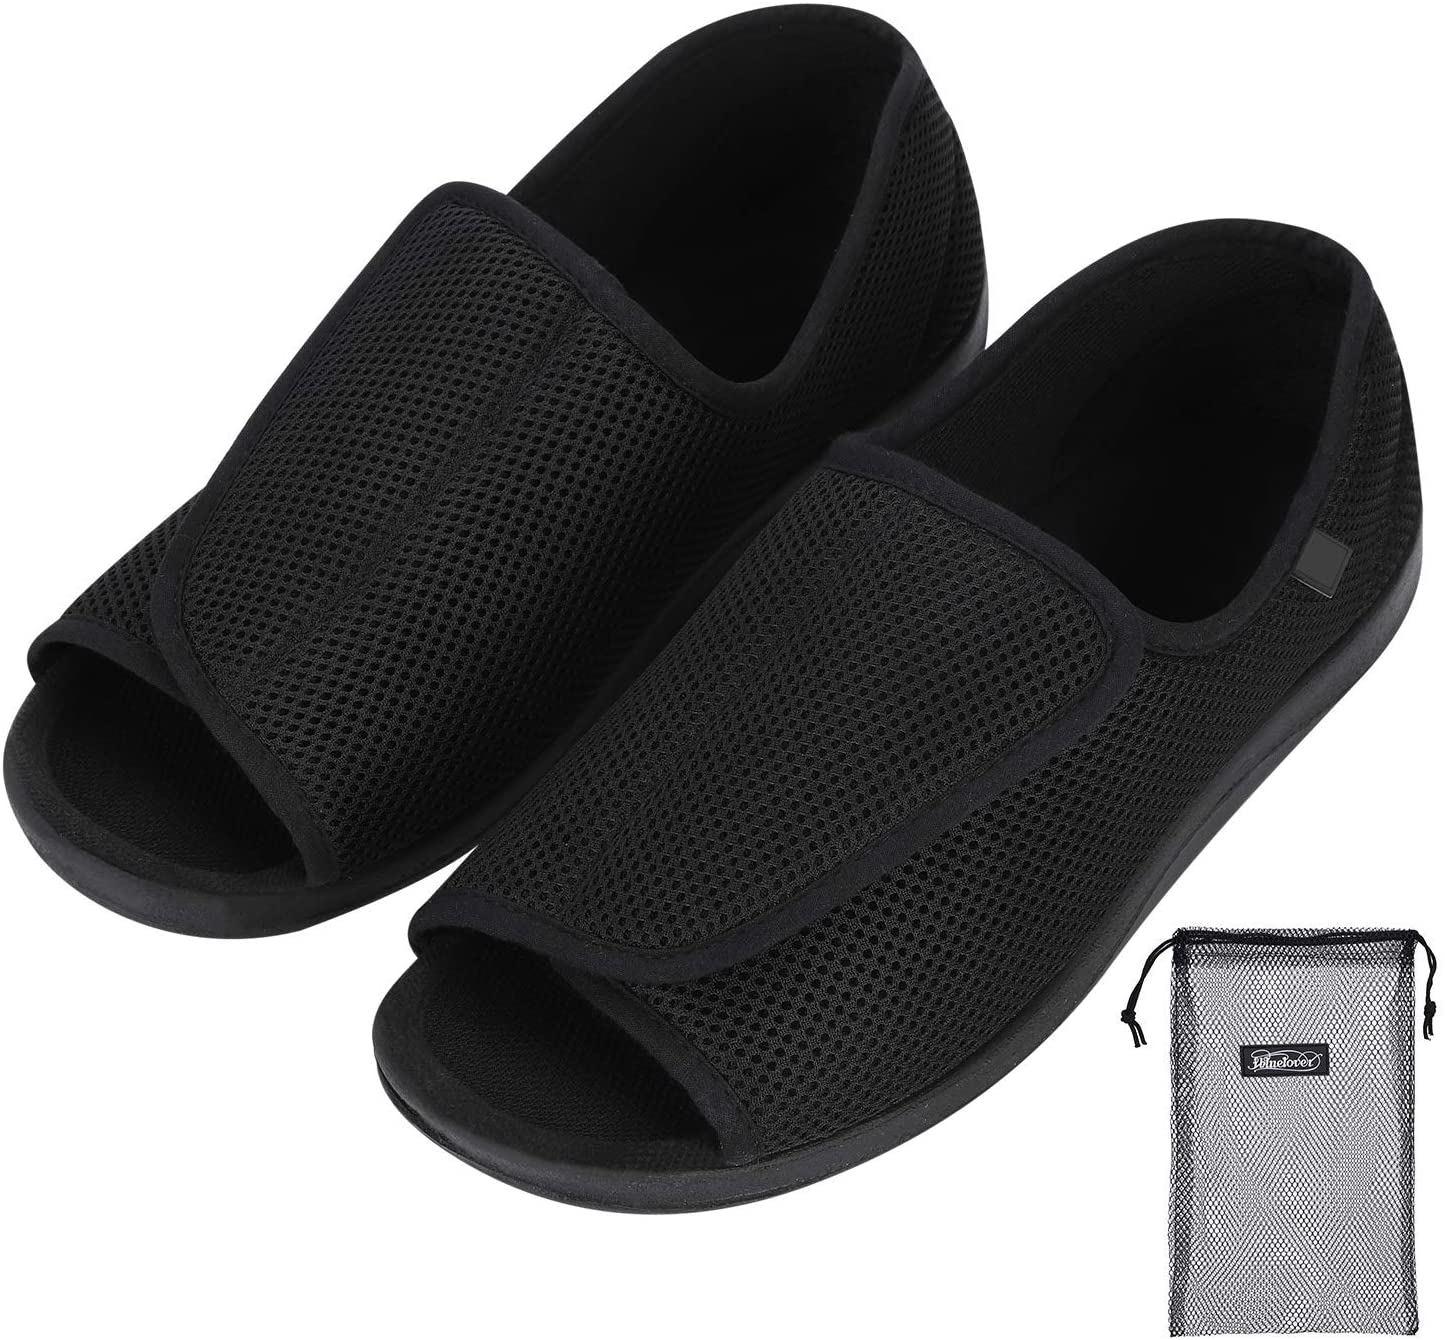 Diabetic Shoes Walking Open Toe Shoes Broken Toes Slippers Durable Square Toe Support Brace for Broken Bones Man Fracture Recovery Injury Foot Suitable for Bunion Feet, Diabetic People